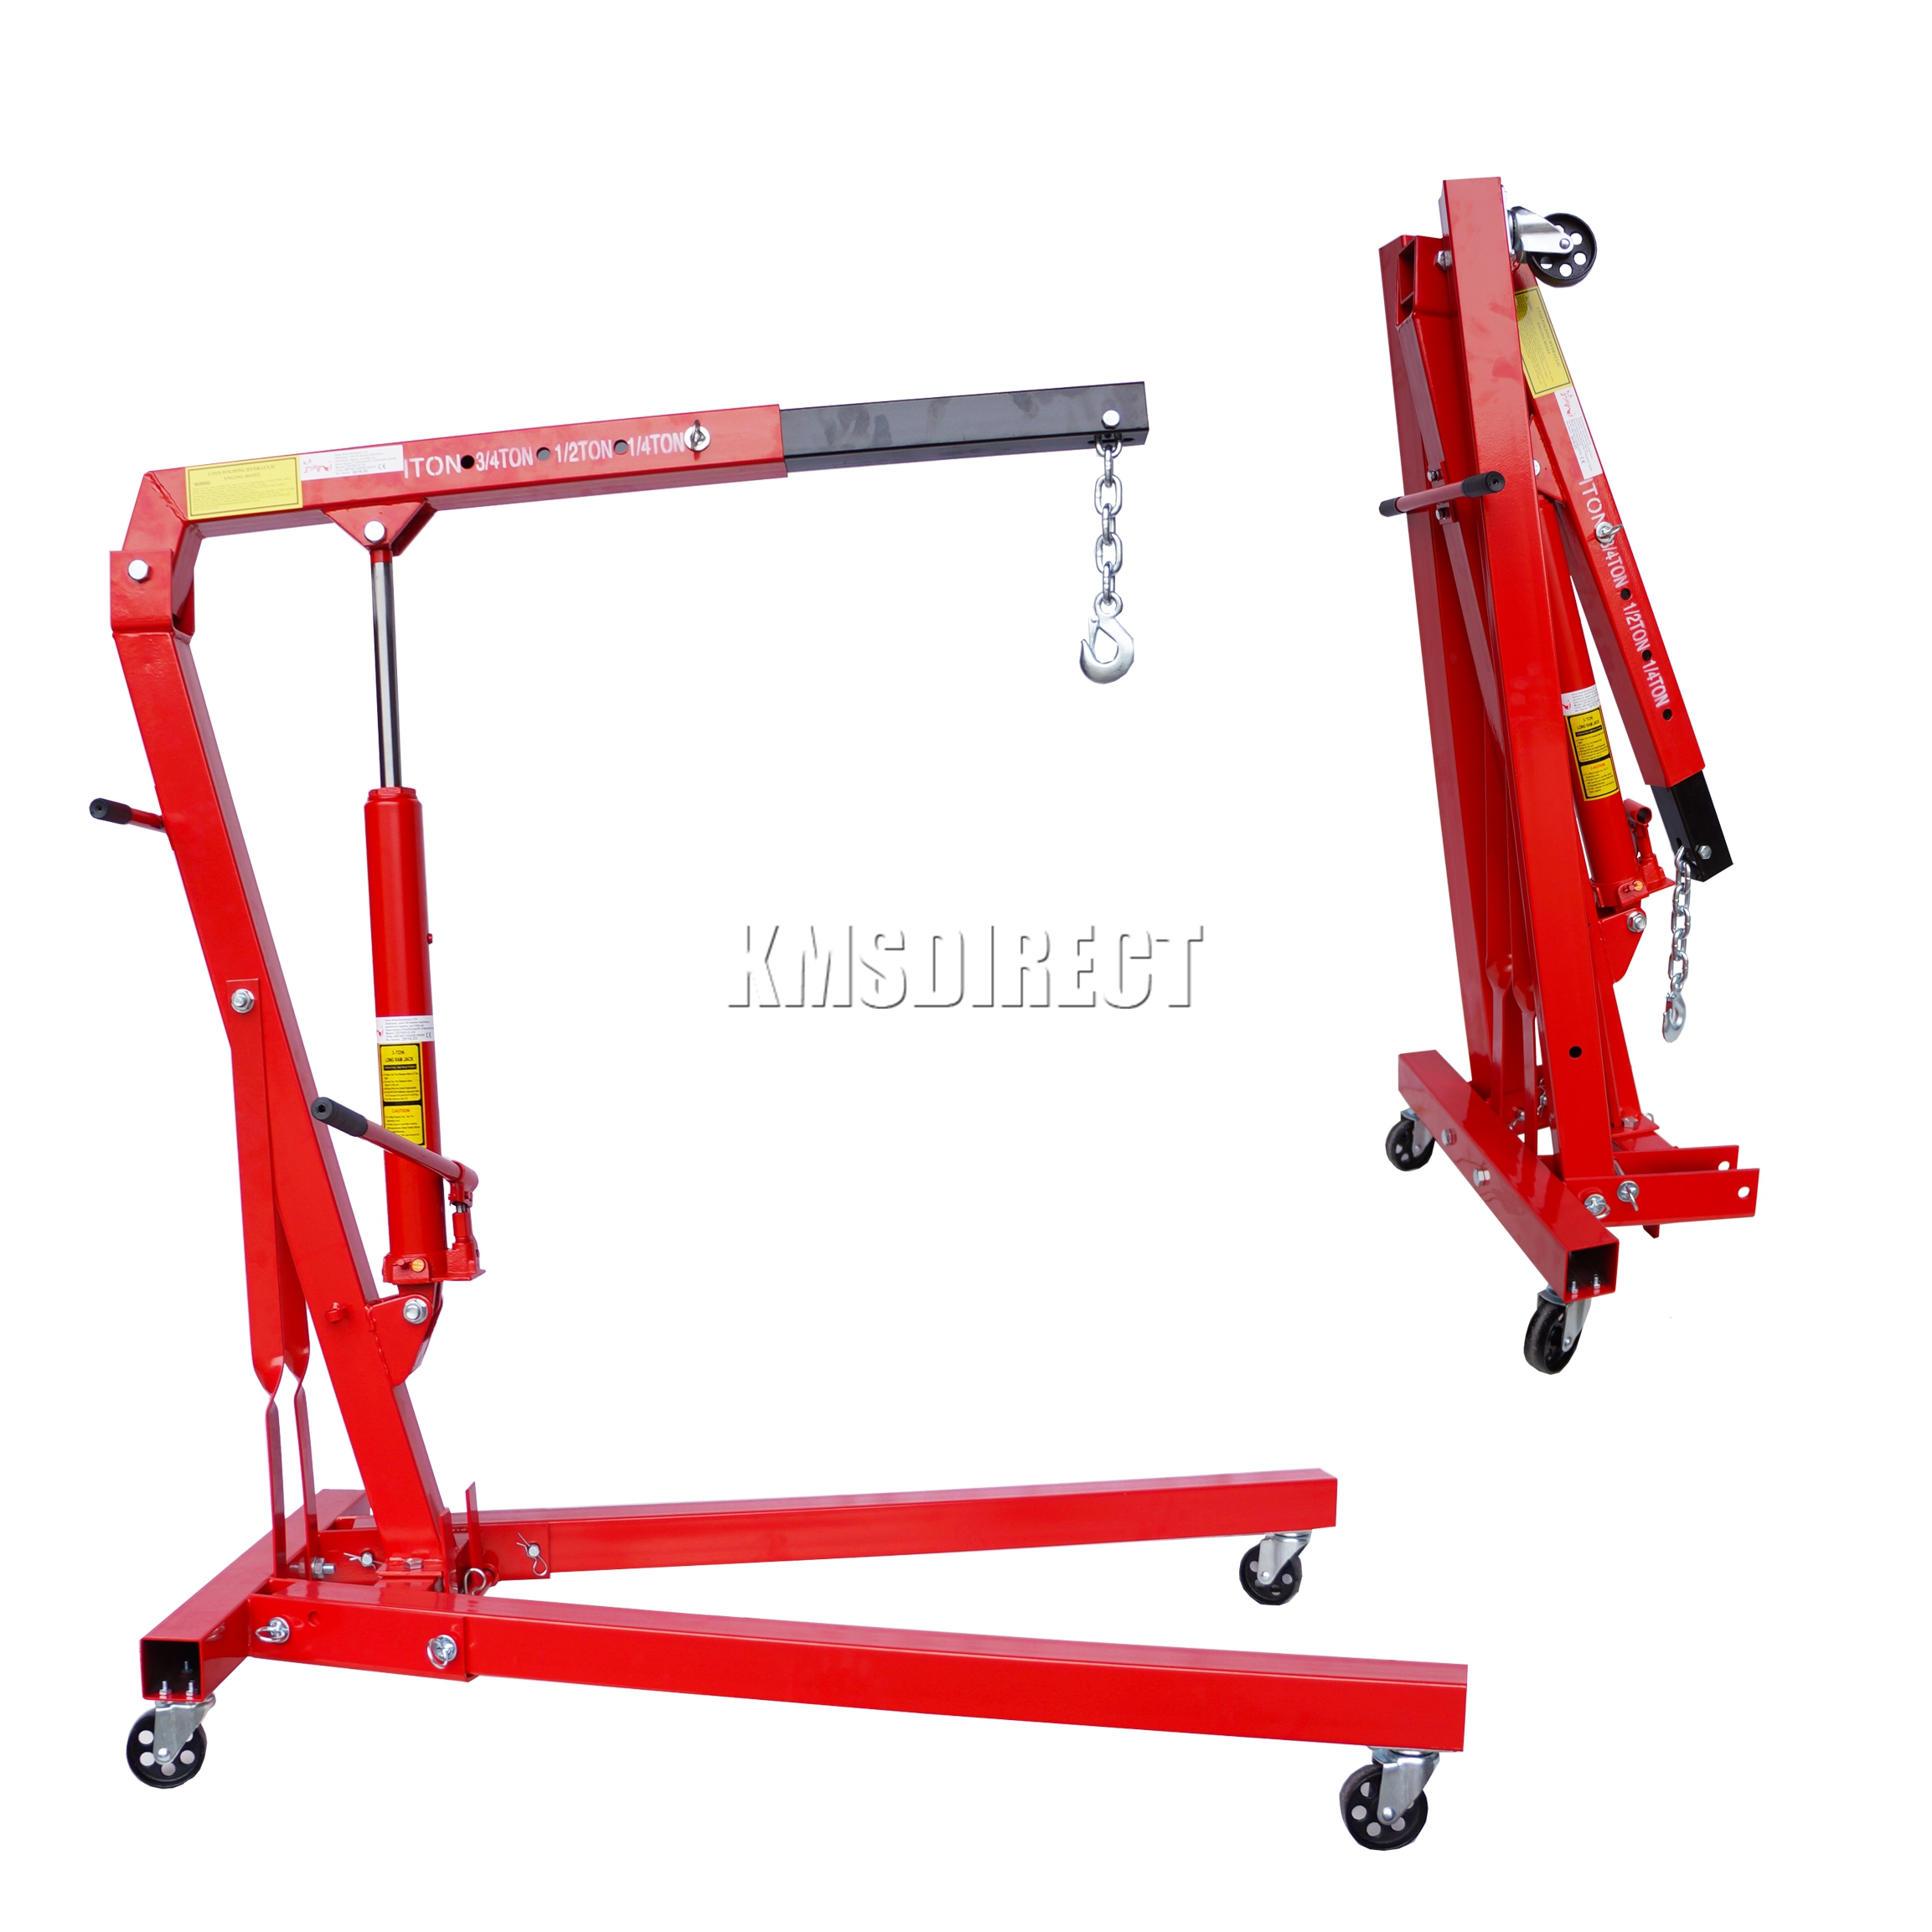 Foxhunter Red 1 Ton Tonne Hydraulic Folding Engine Crane